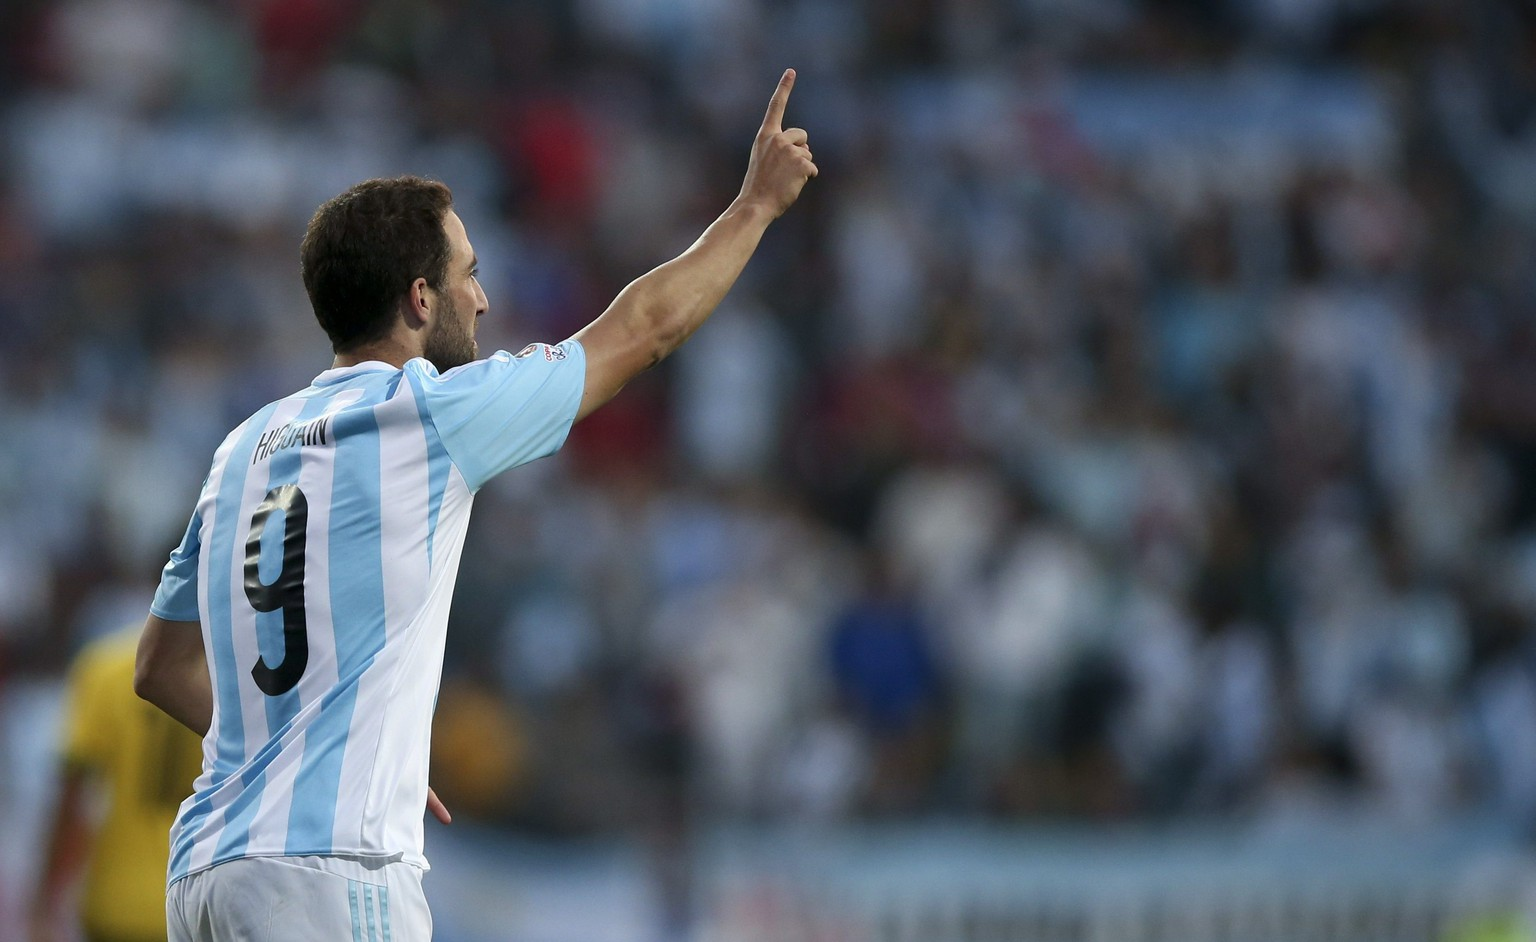 epa04811640 Argentina's Gonzalo Higuain celebrates after scoring during the Copa America 2015 Group B soccer match between Argentina and Jamaica, at Estadio Sausalito in Vina del Mar, Chile, 20 June 2015.  EPA/MARIO RUIZ